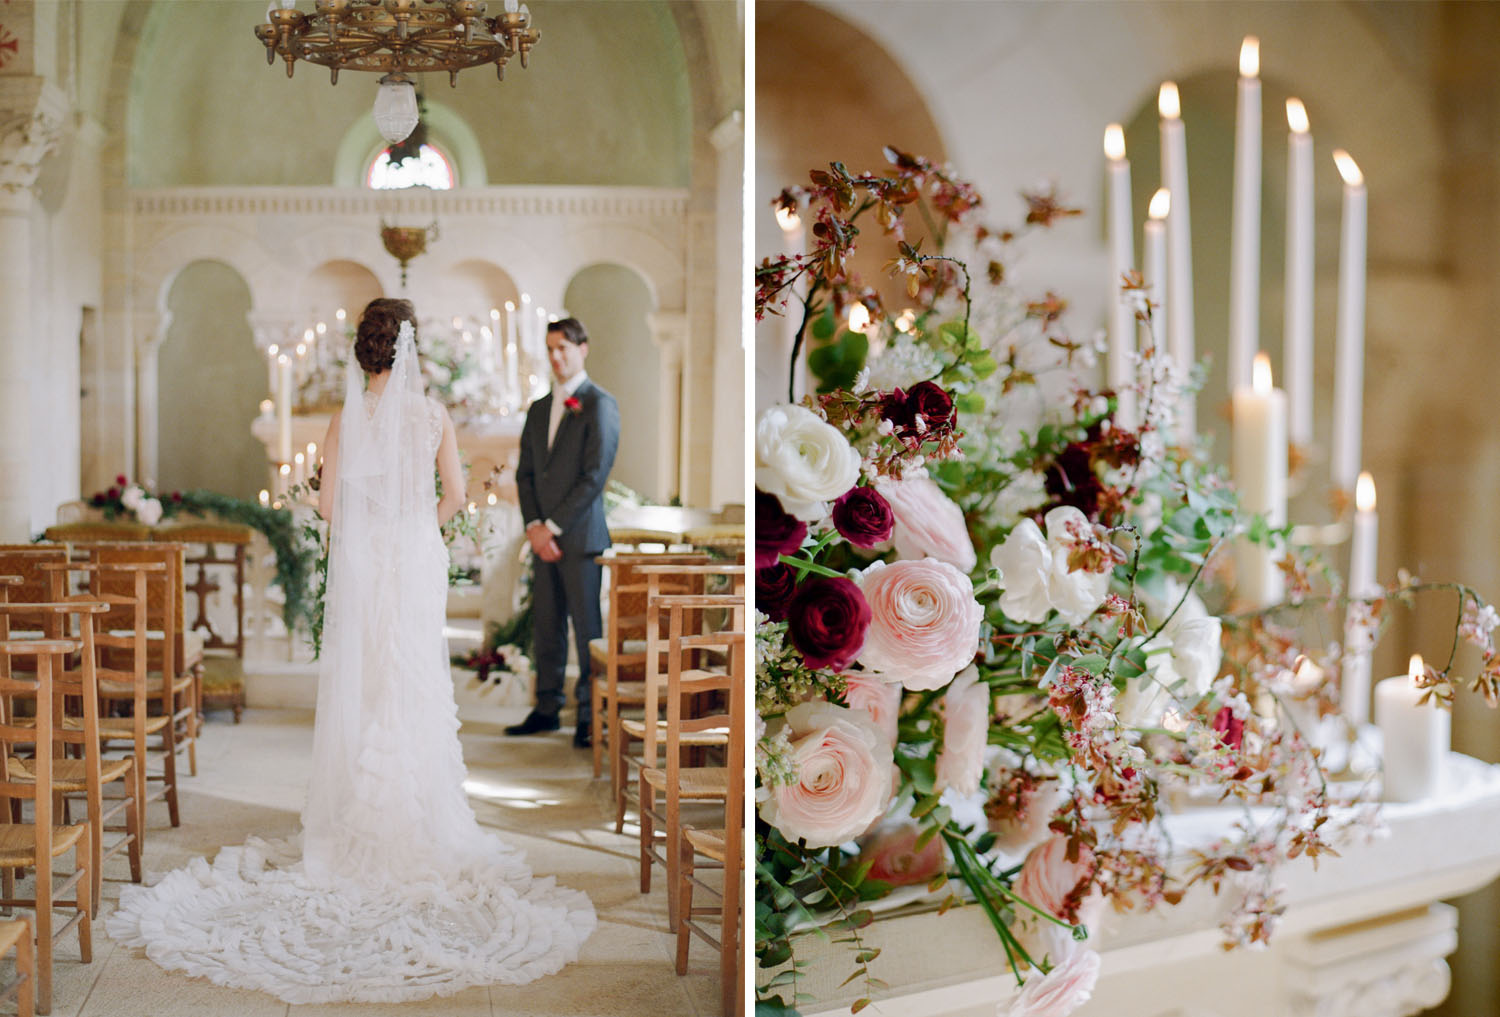 A wedding ceremony in Chateau de Varennes chapel in Burgundy, France; Sylvie Gil Photography